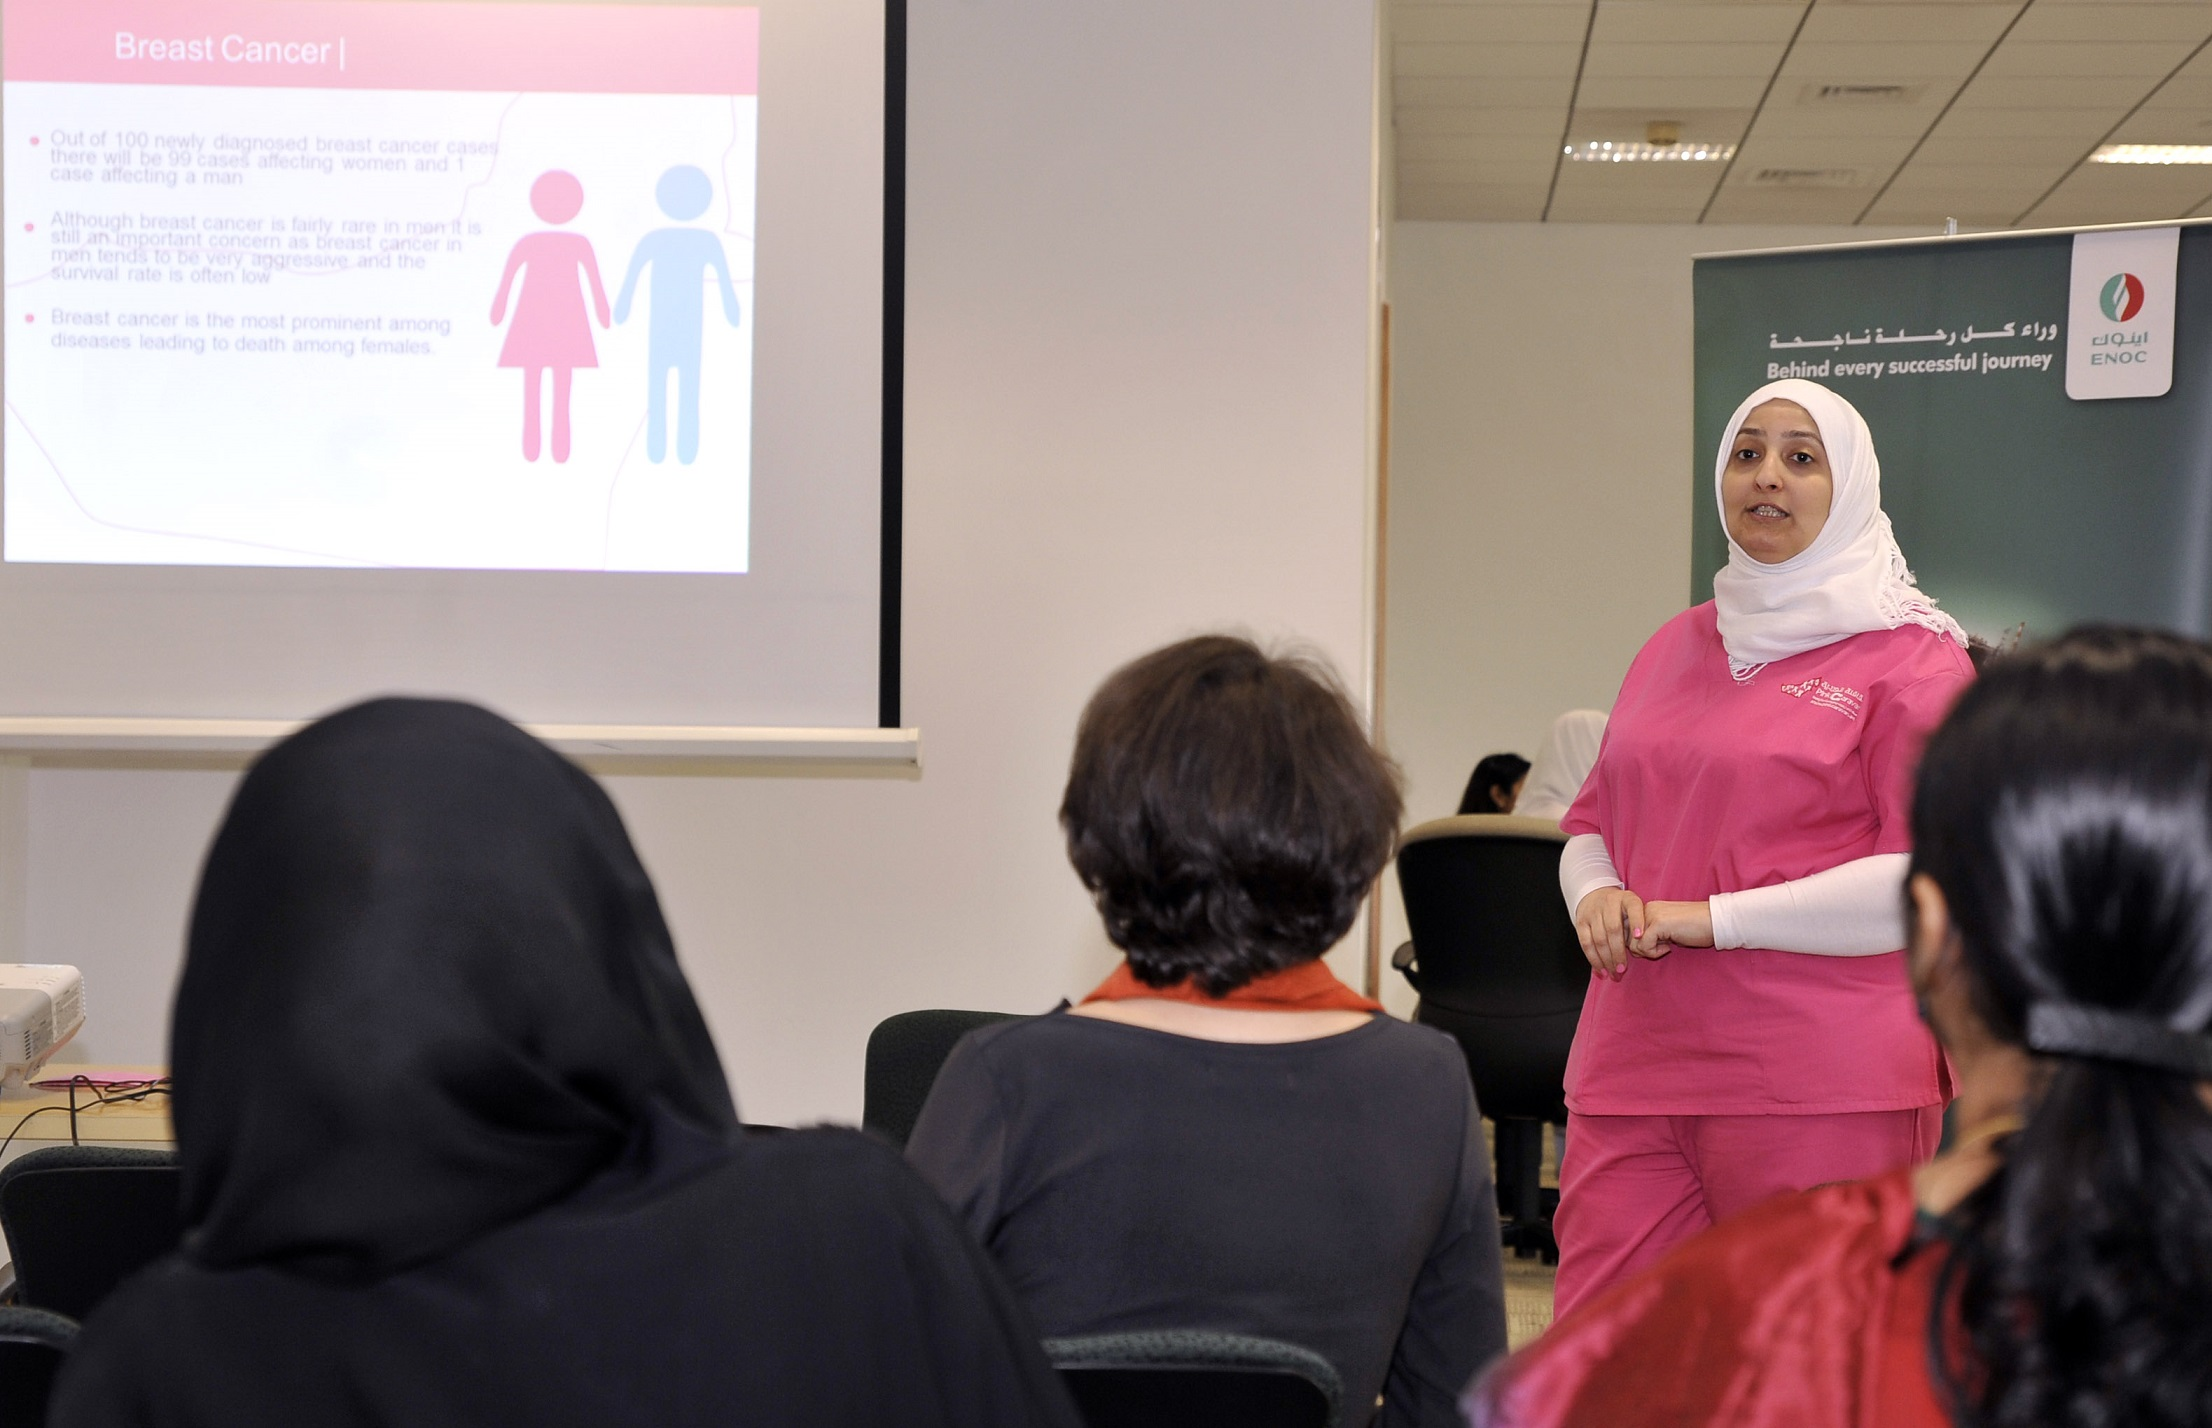 ENOC hosts breast cancer awareness day in partnership with Pink Caravan